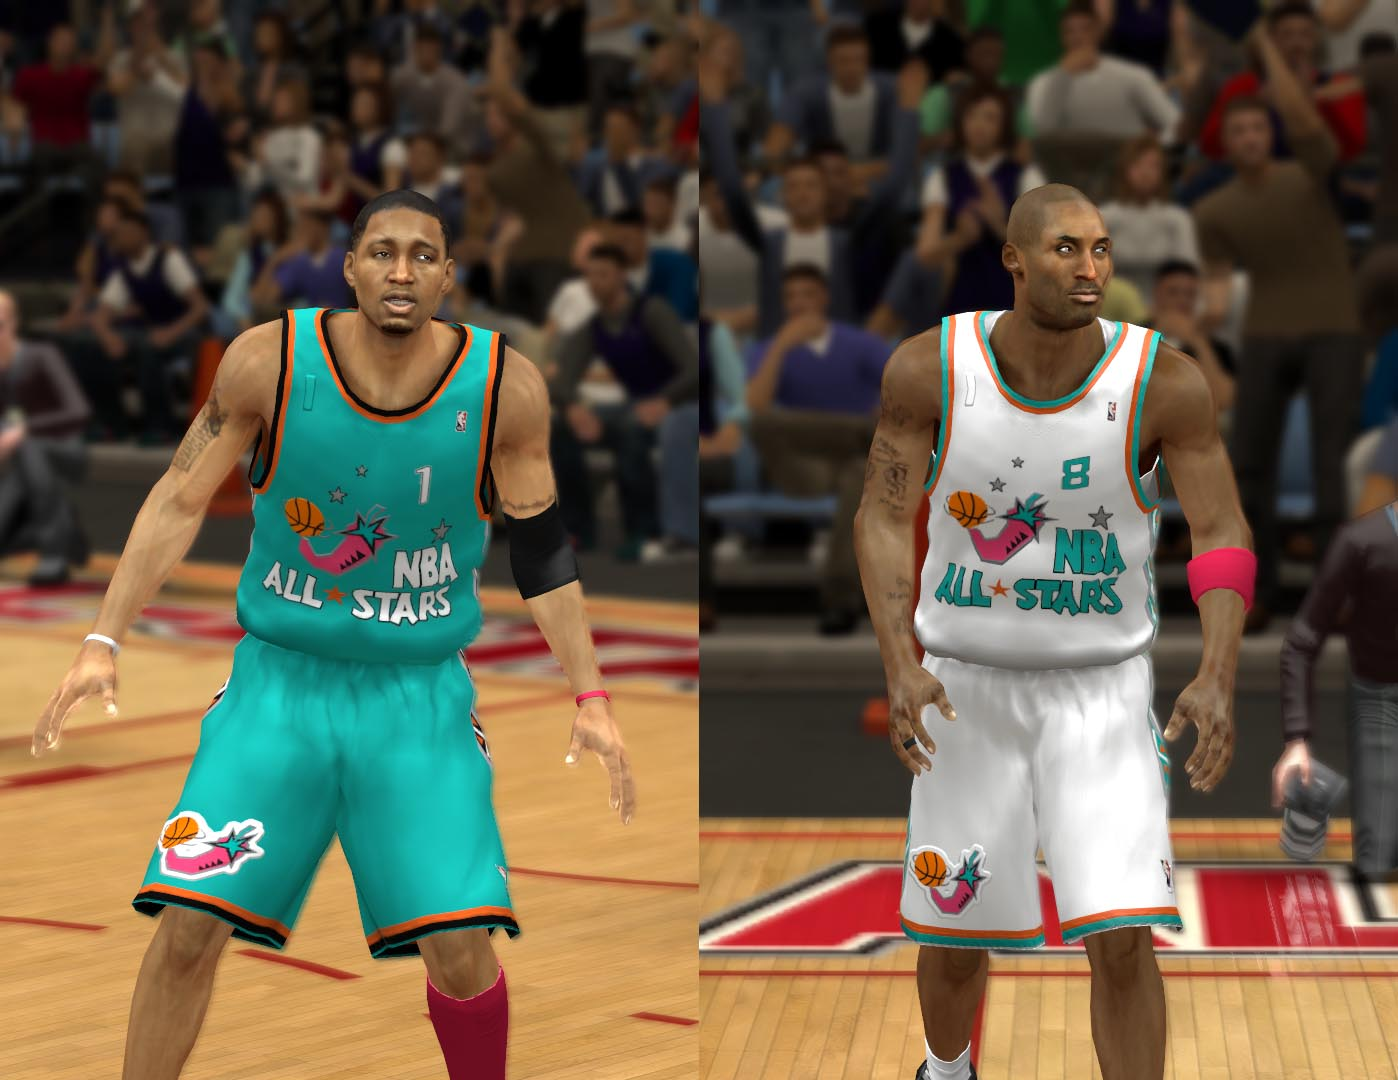 1996 All-Star Jerseys 2K13